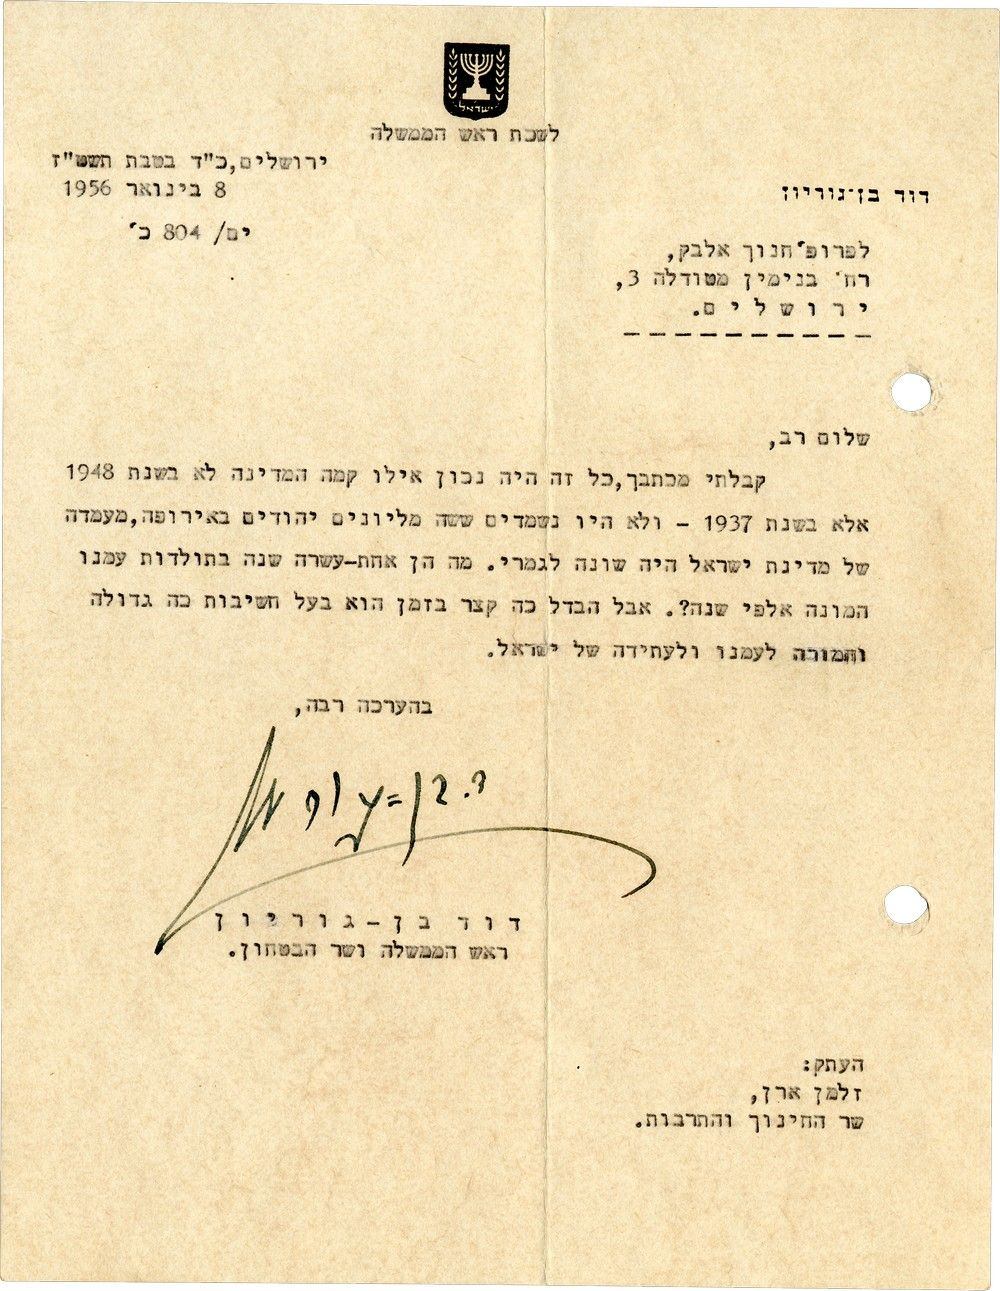 Ben-Gurion: Had a Jewish State Been Established in 1937, Millions of Jews Would Not Have Died in the Holocaust